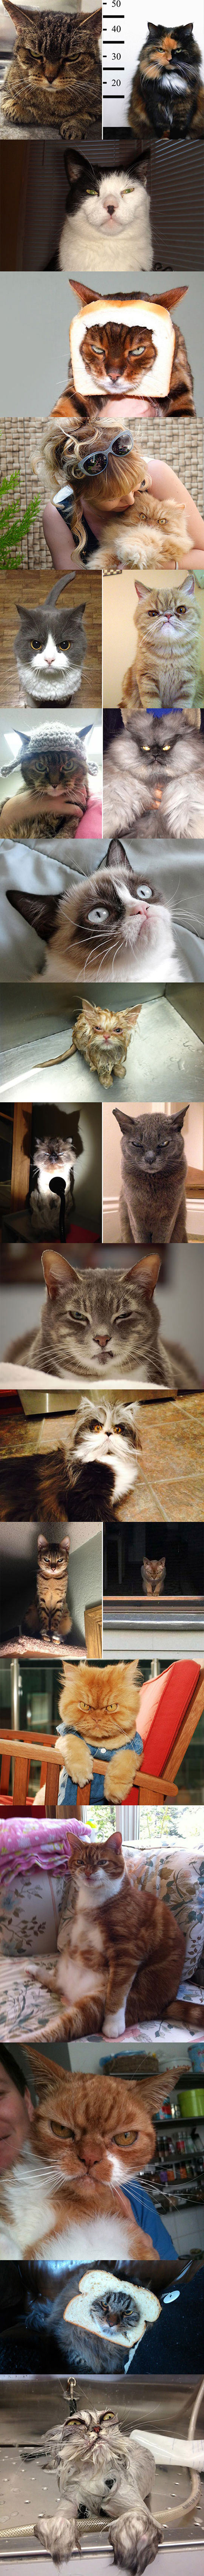 Some Cats Whose Death Stare Will Devour Your Soul